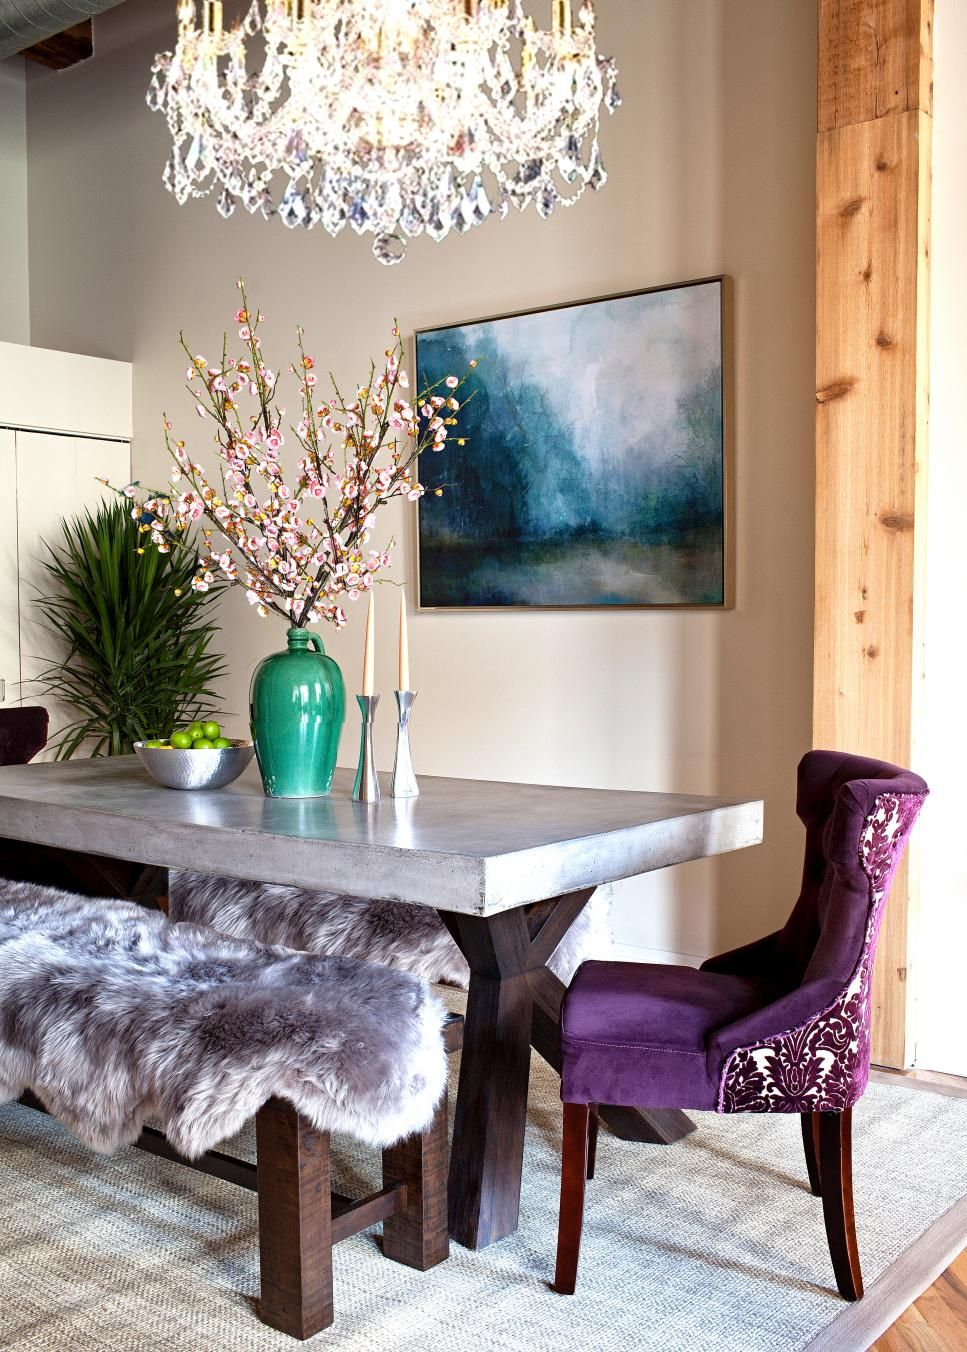 Rich Velvet Purple Chairs Sit At Opposing Ends Of The Table In This Ultra BenchDining